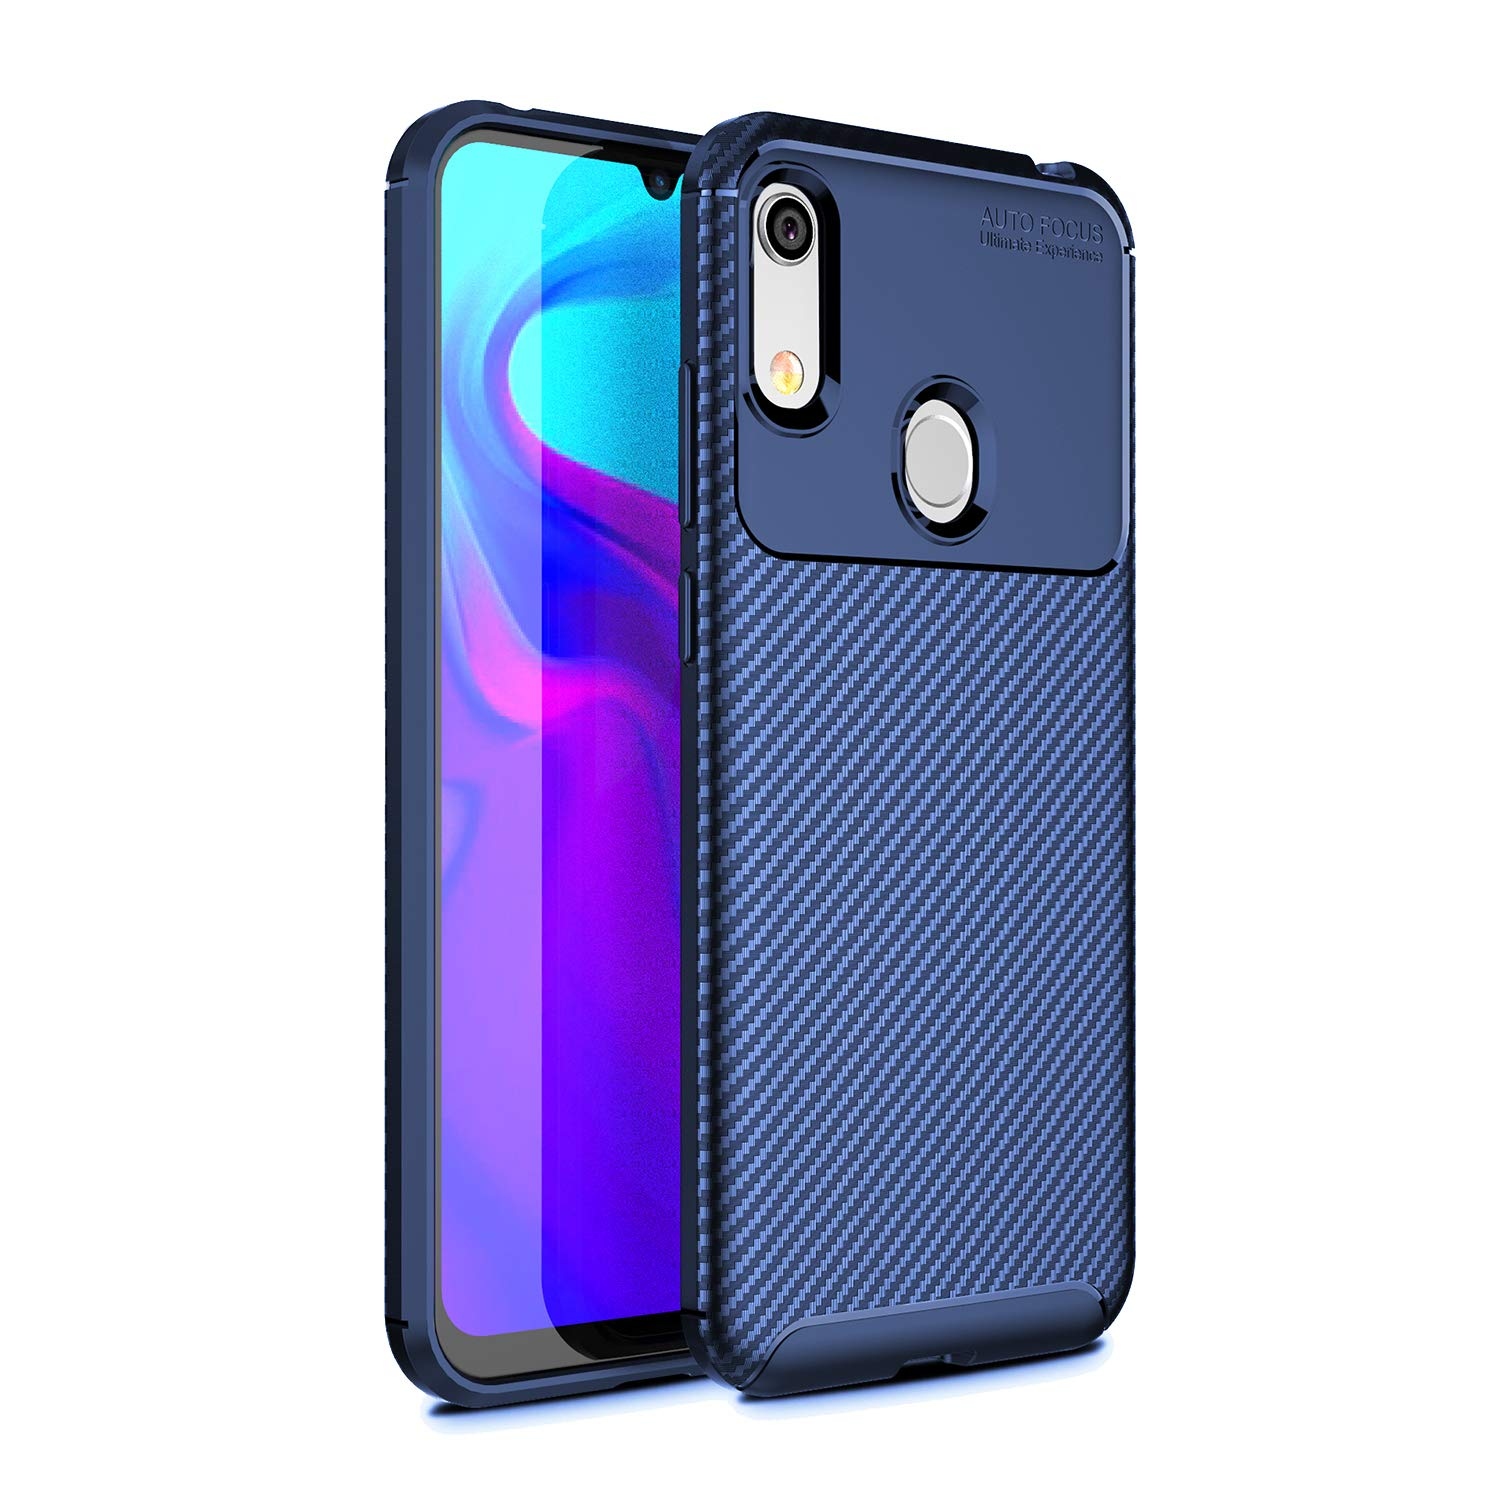 Pulen for Huawei Honor Play 8A Case,Flexible Protective Cover Anti-Slip Scratch Proof Shock-Absorption Ultra Light Shell Soft Gel Silicone Case for ...